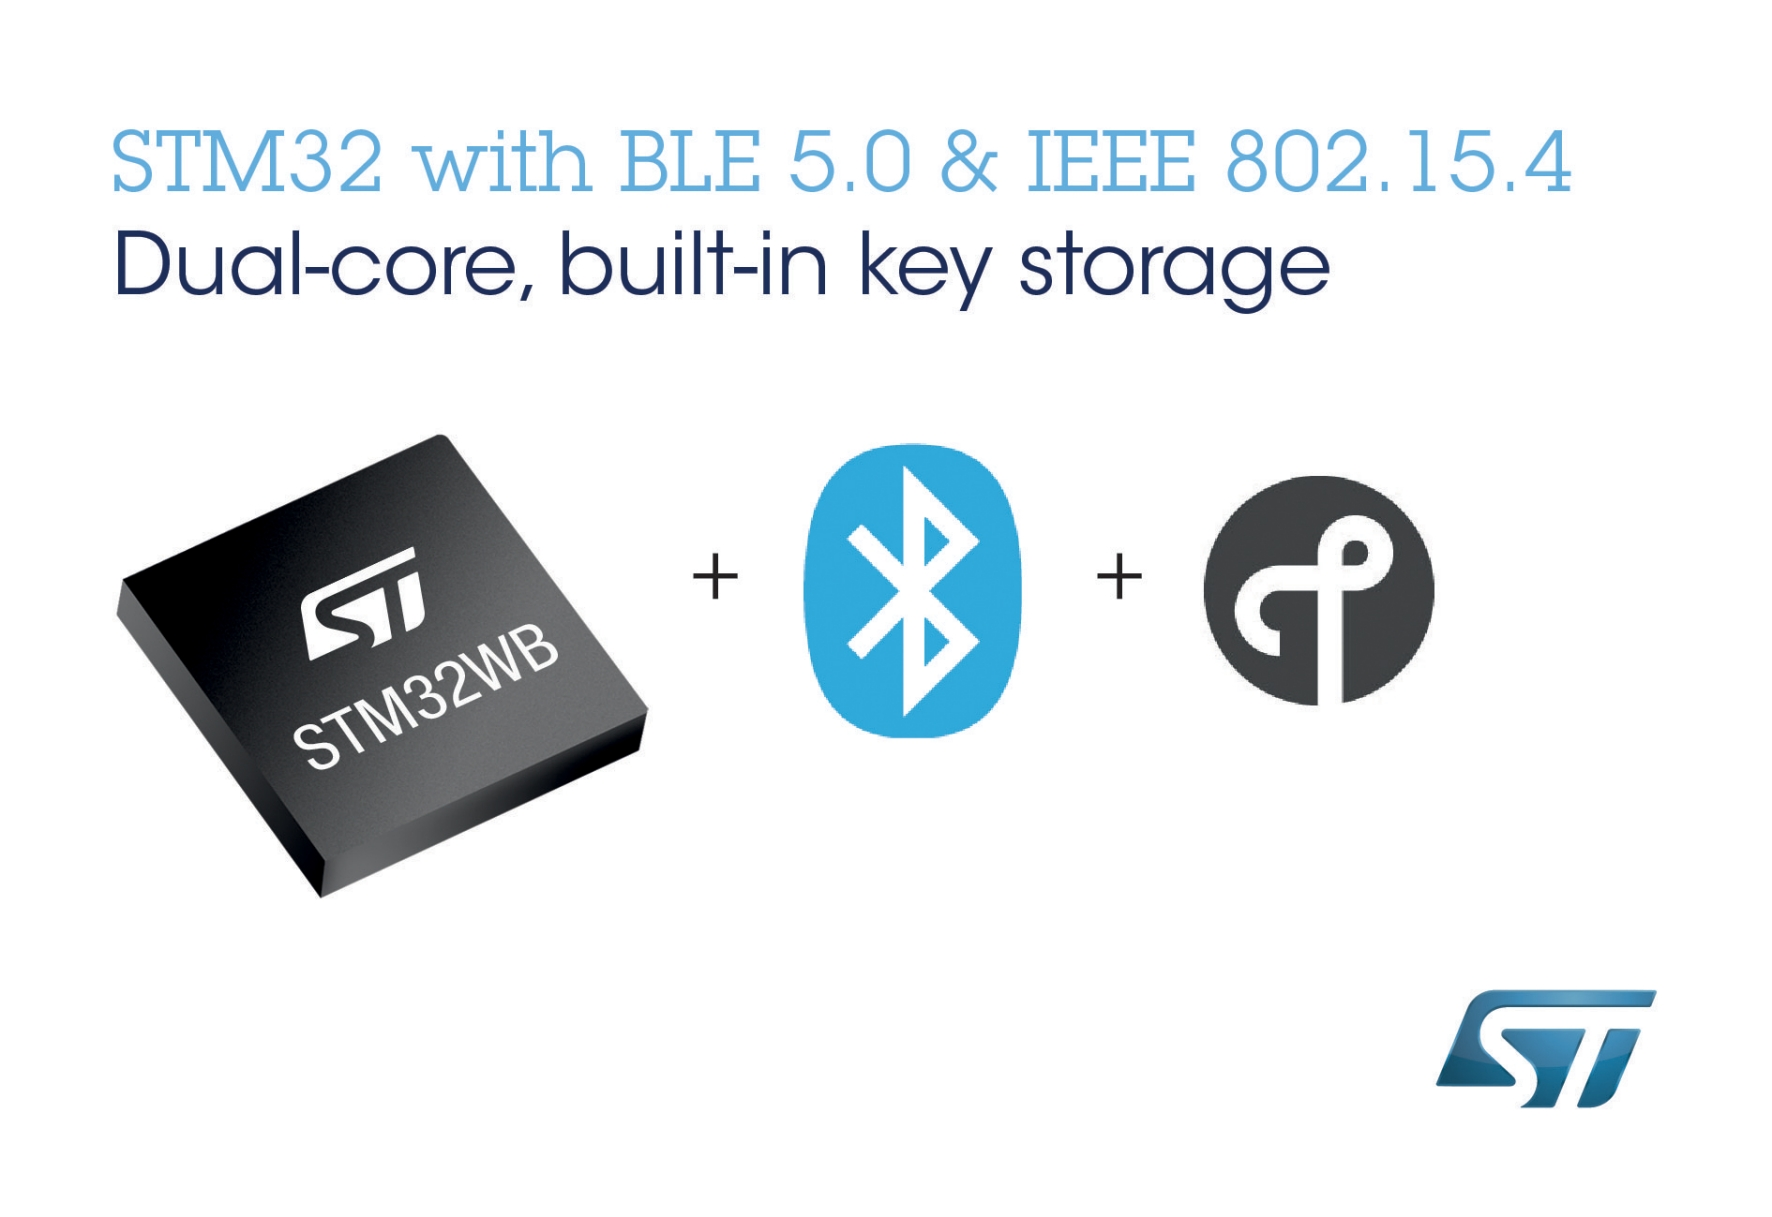 STMicroelectronics Powers Next-Generation IoT Devices with